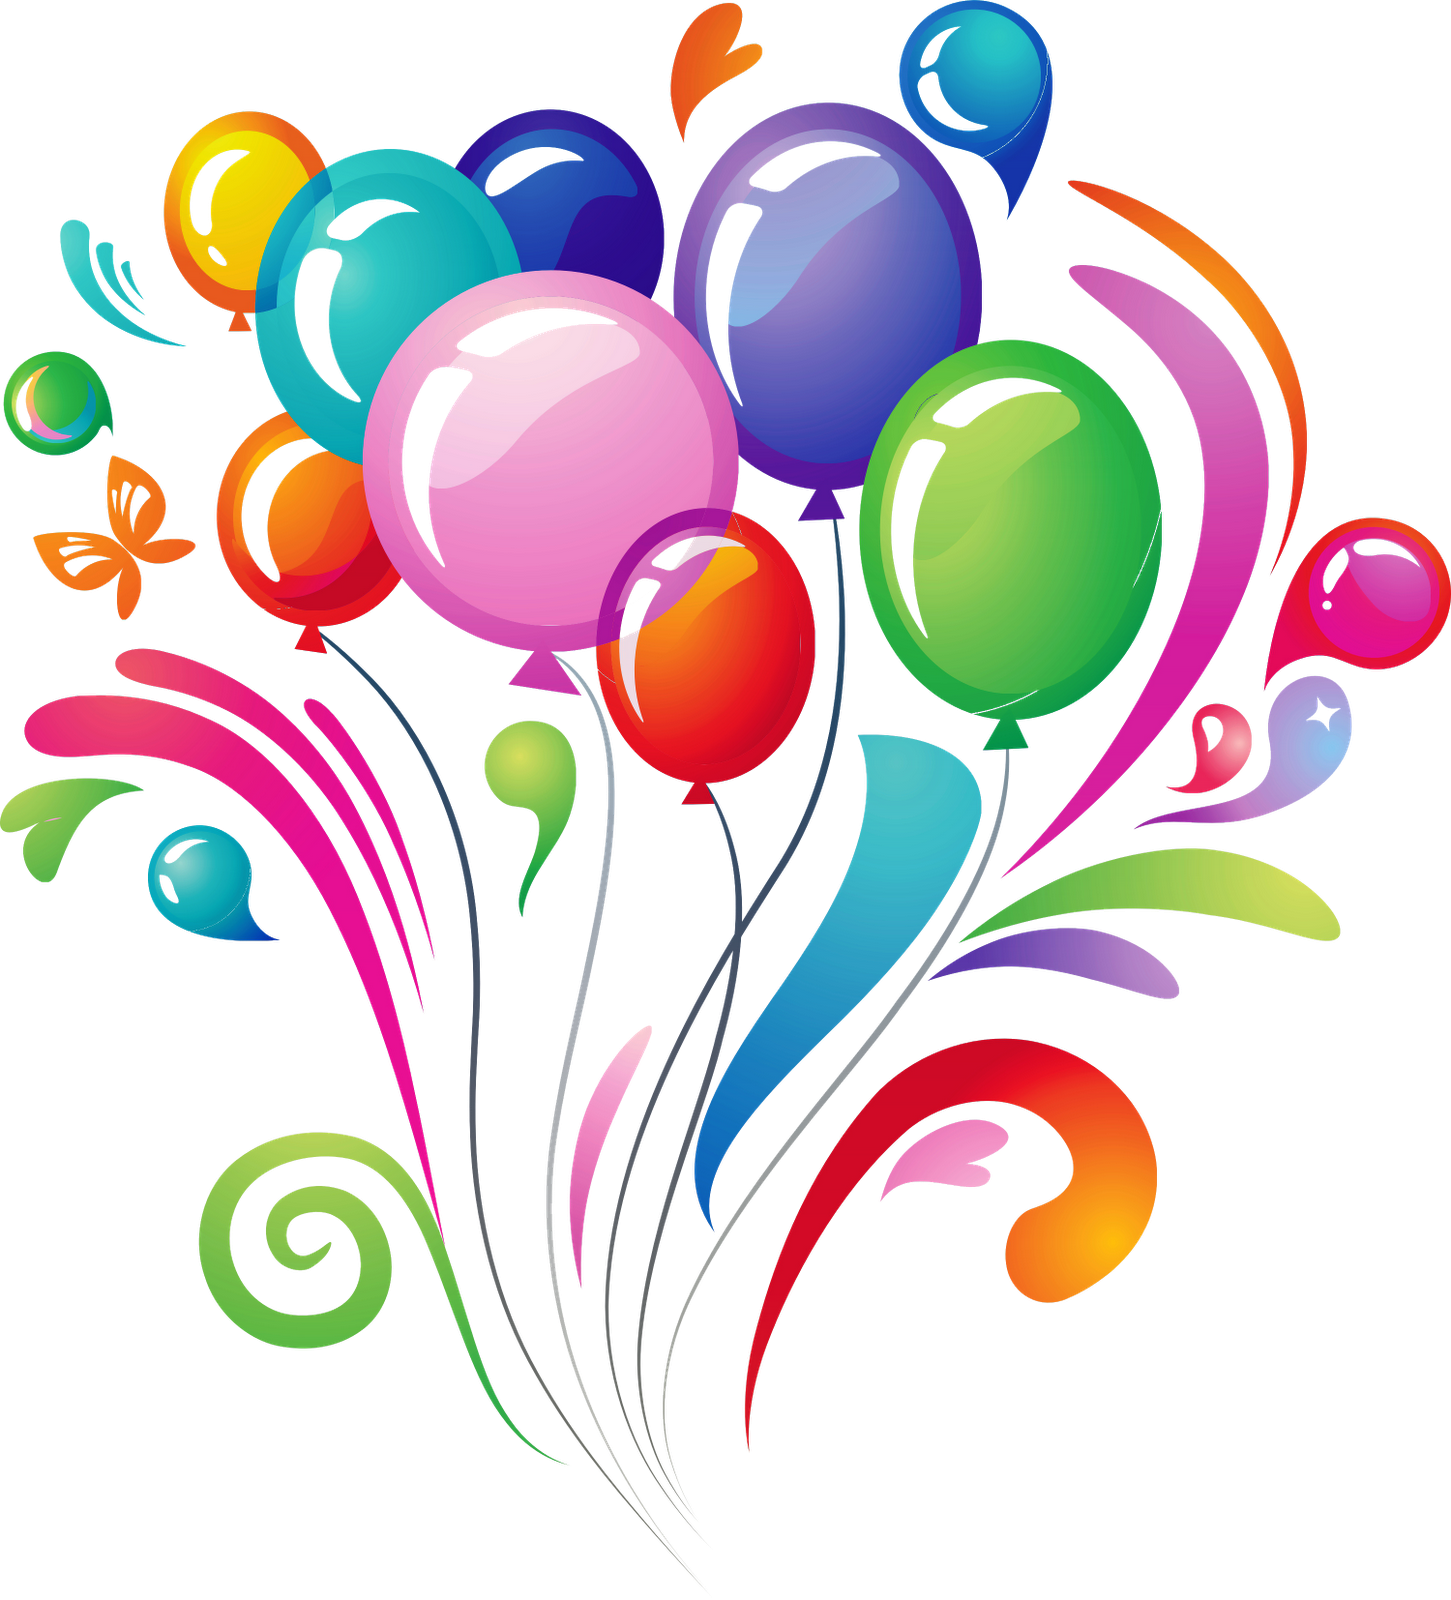 Transparent free download pngmart. Happy birthday png images